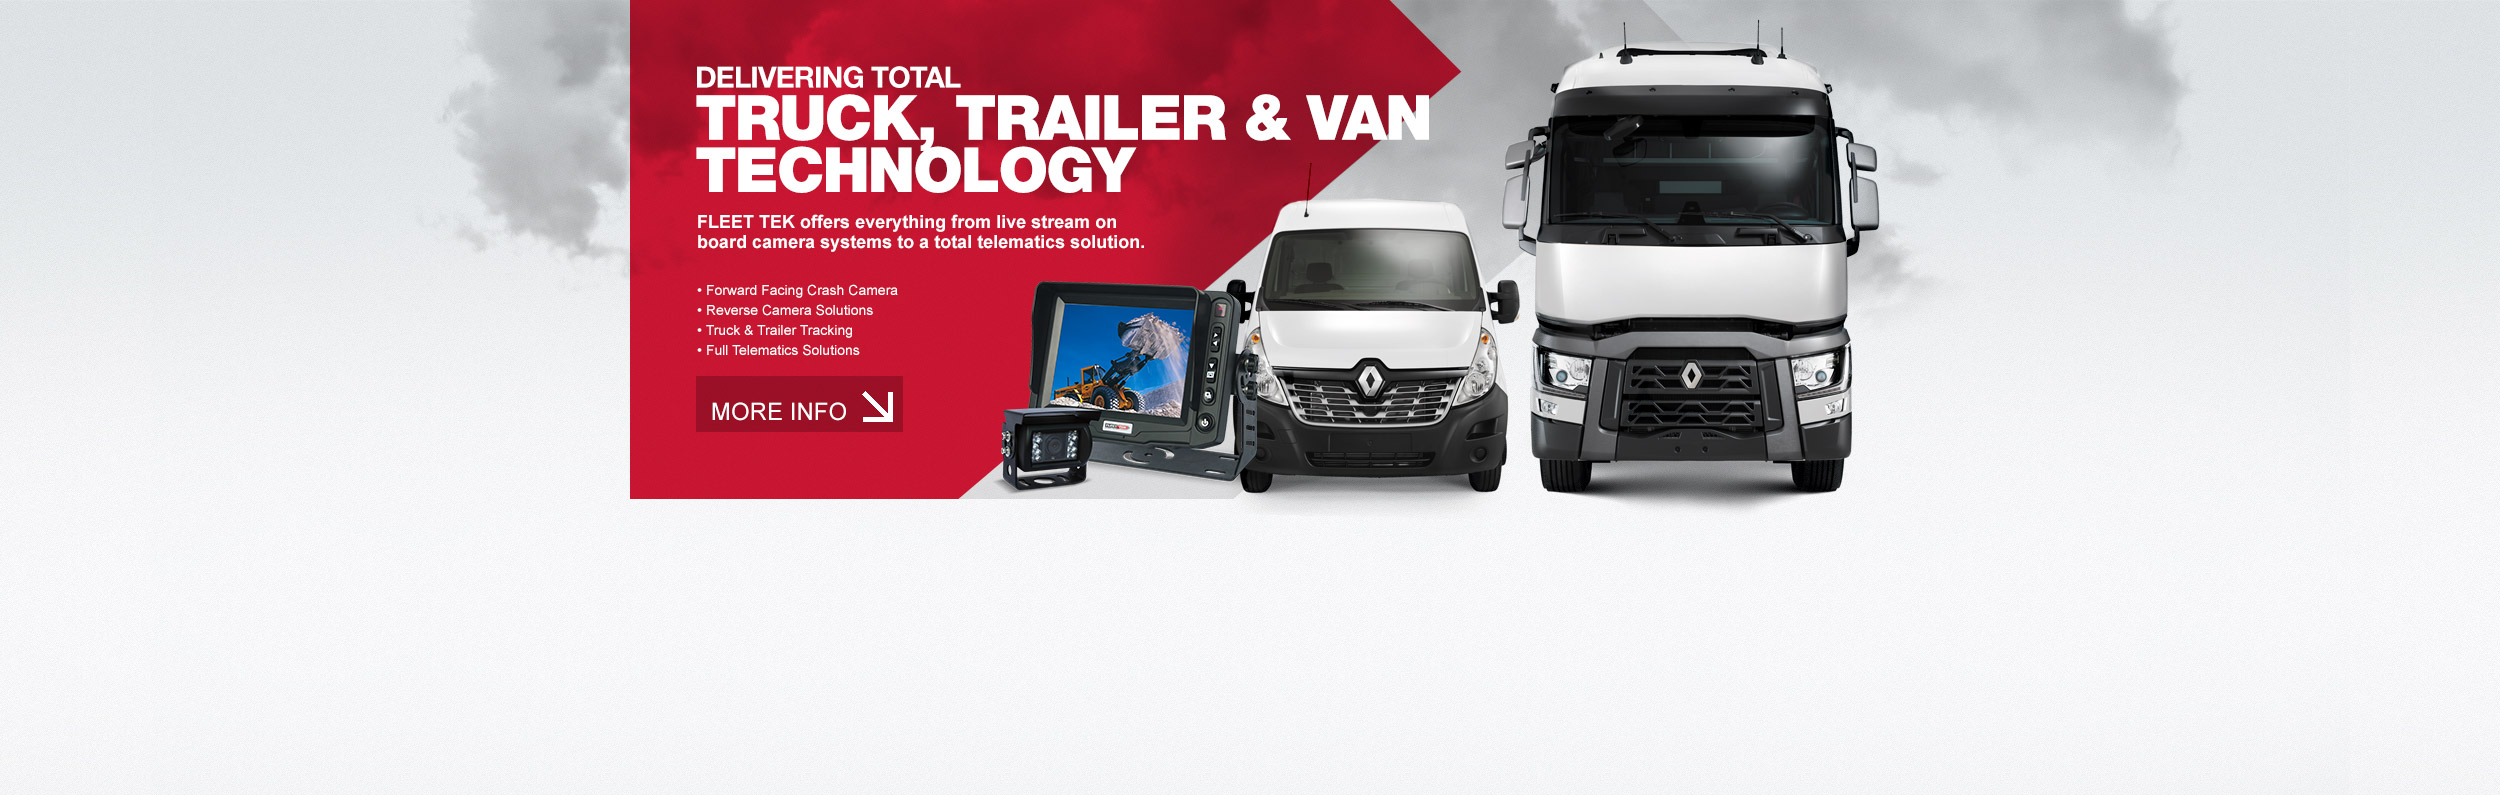 DELIVERING TOTAL  TRUCK, TRAILER & VAN  TECHNOLOGY